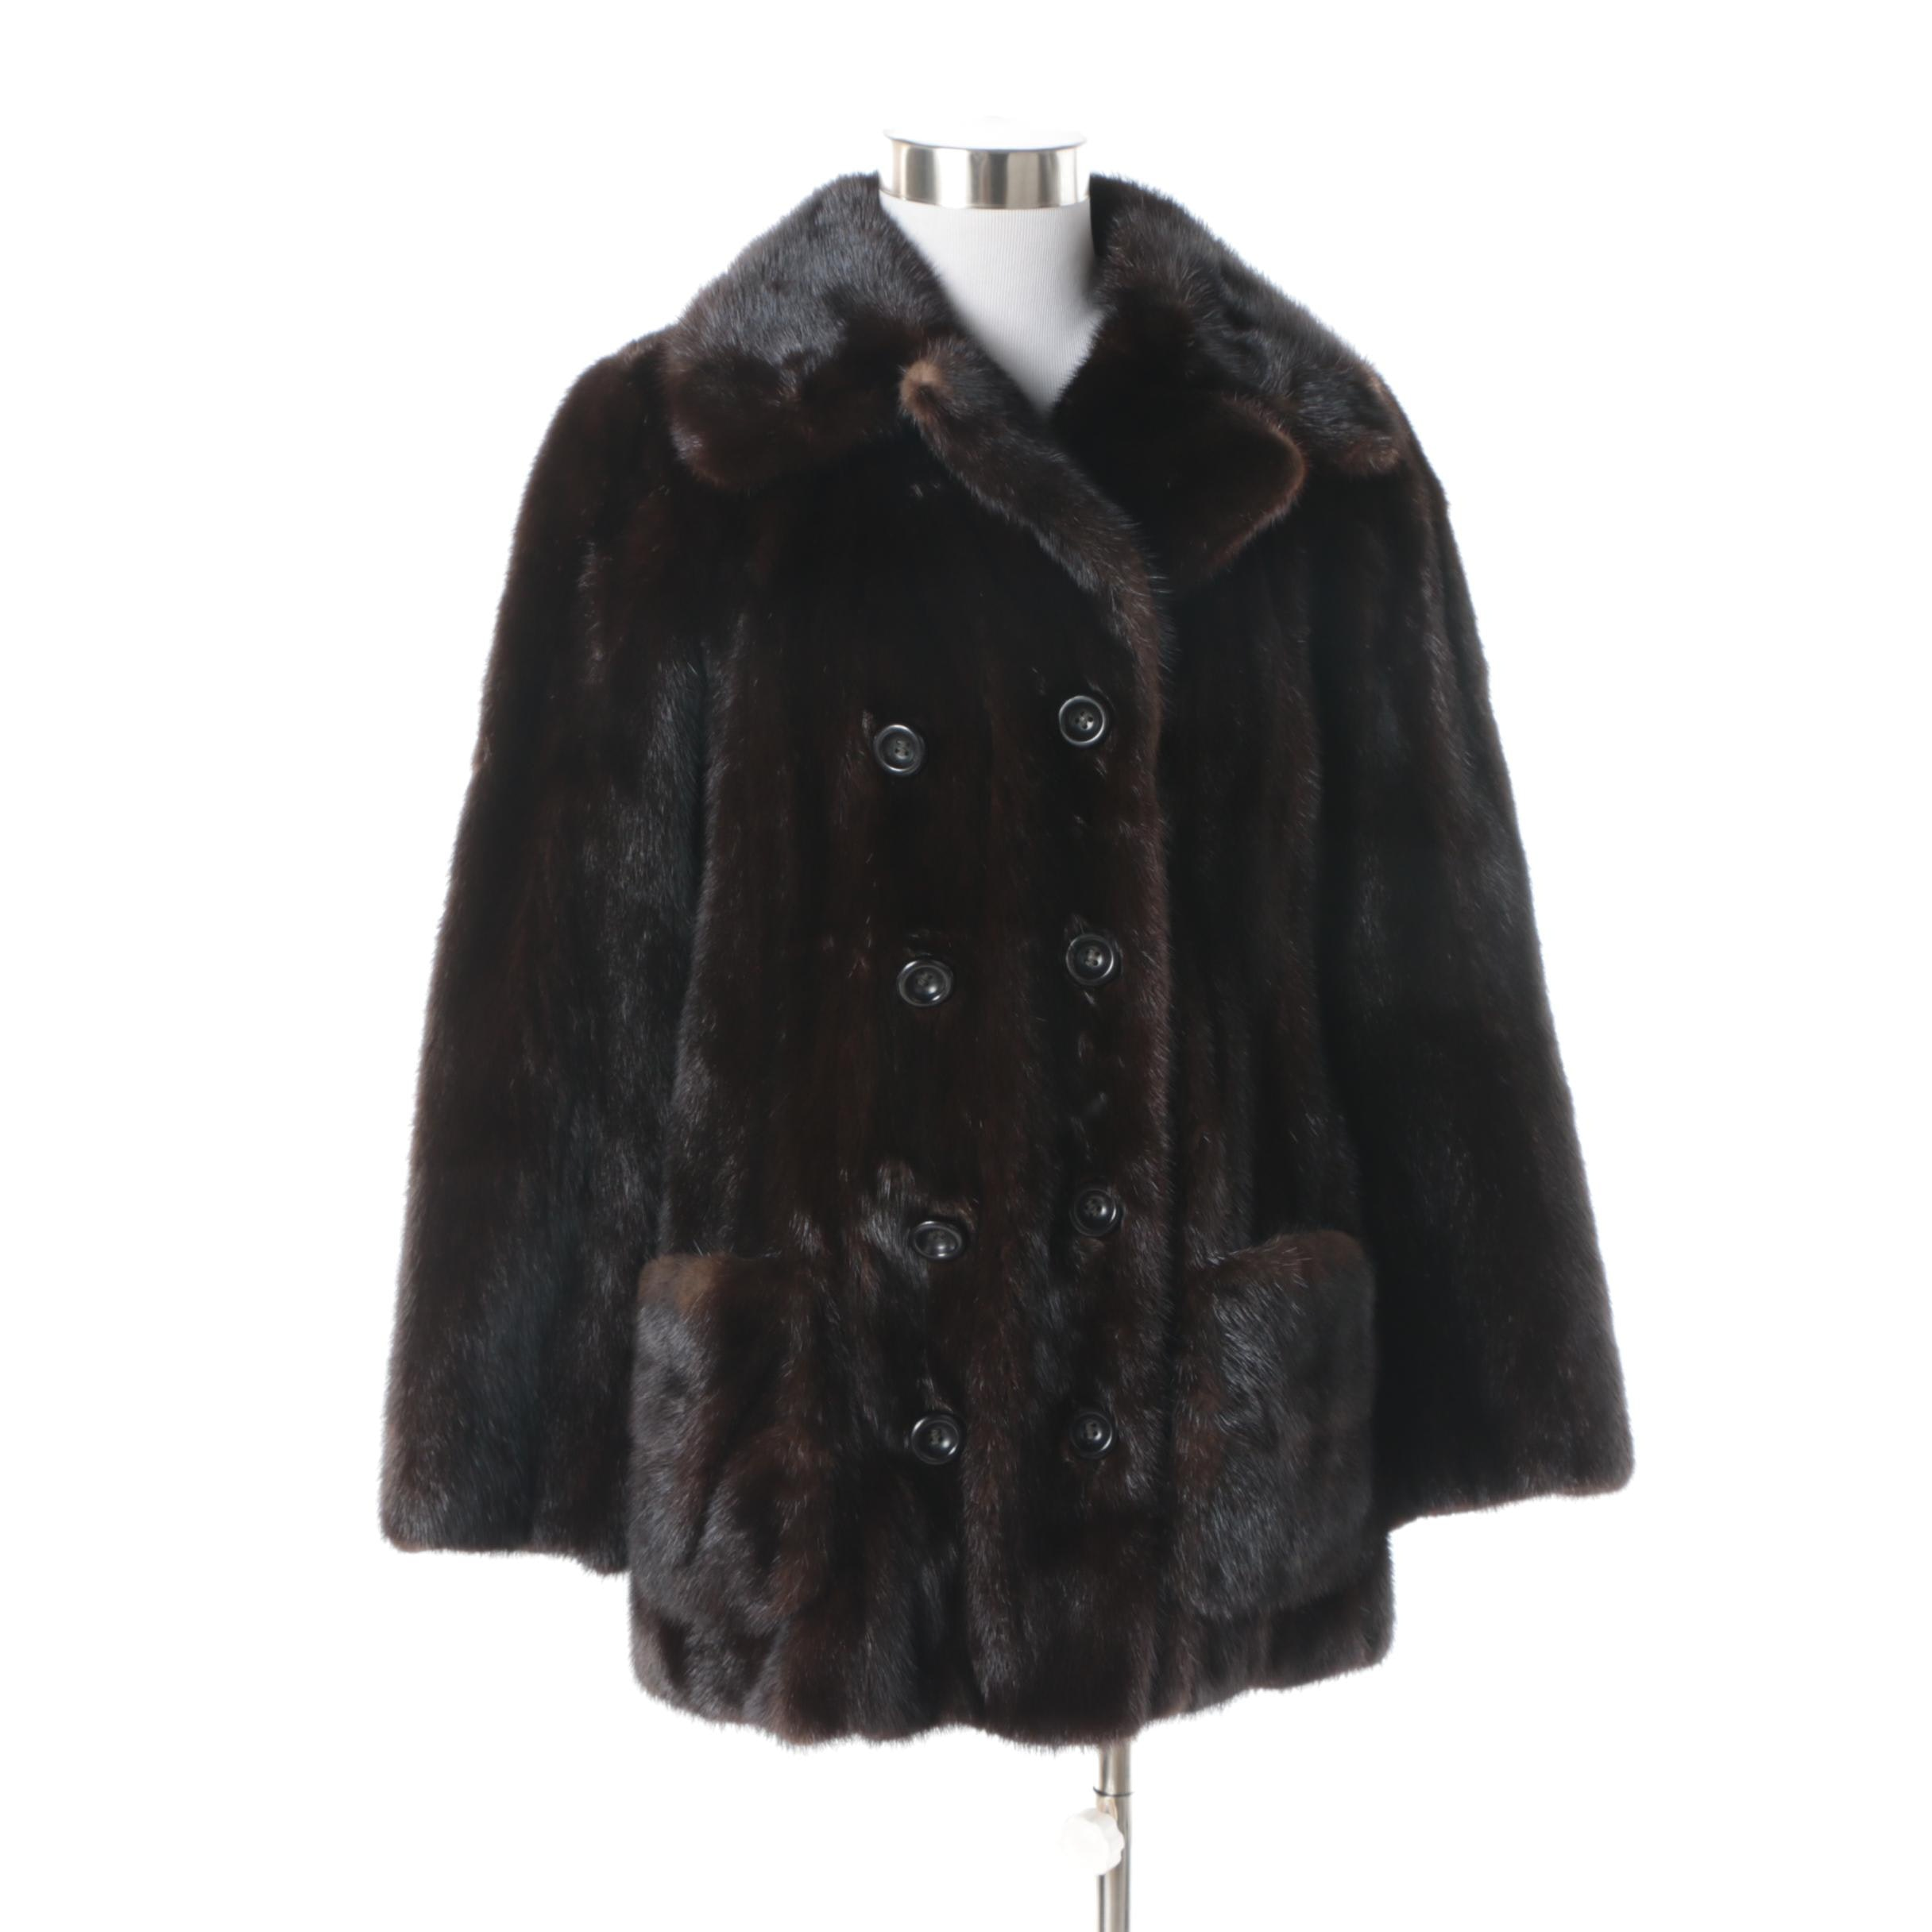 Women's Vintage Dark Brown Double-Breasted Mink Fur Coat